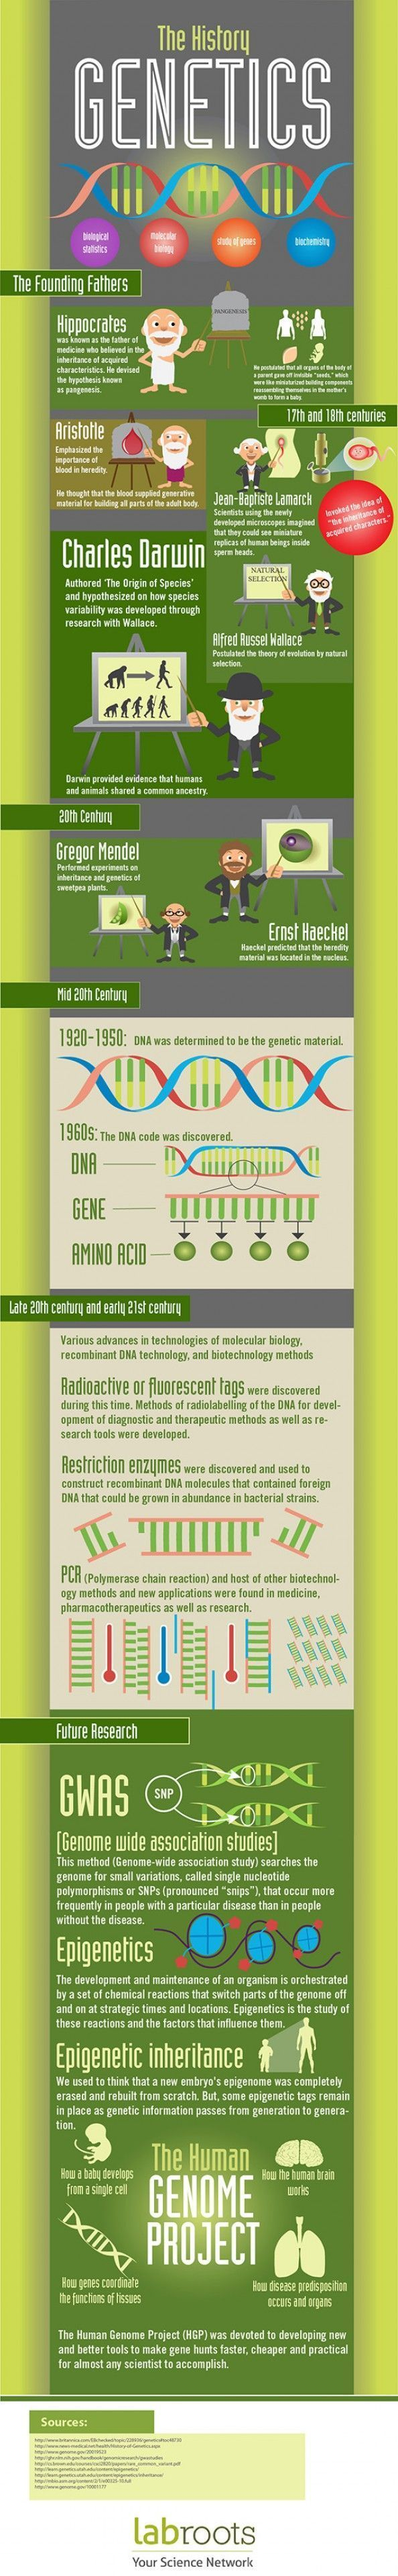 The History of Genetics Infographic.  A lot of info packed in there to share with students, or use for a scavenger hunt assignment.